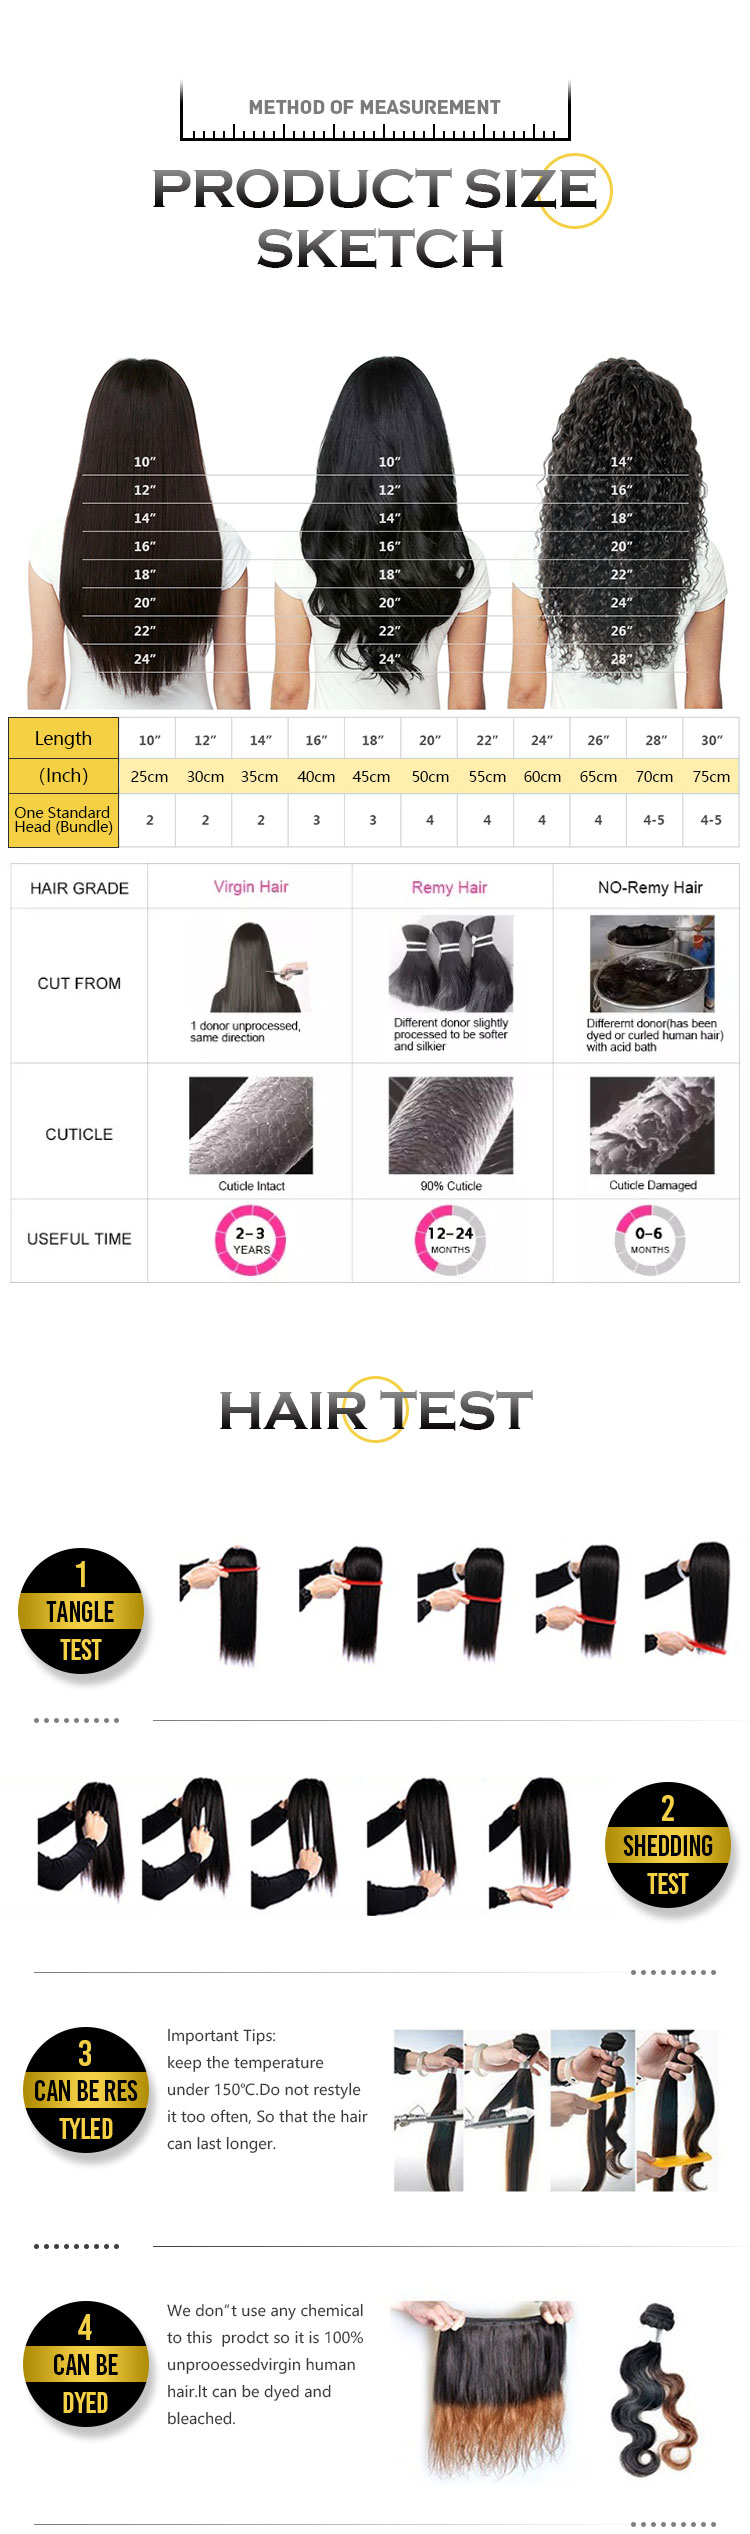 Natural Wave 13*4 Lace Frontal Human Virgin Hair Wigs Full Cuticle Aligned Unprocessed Indian Virgin Hair Wigs Body Wave wigs